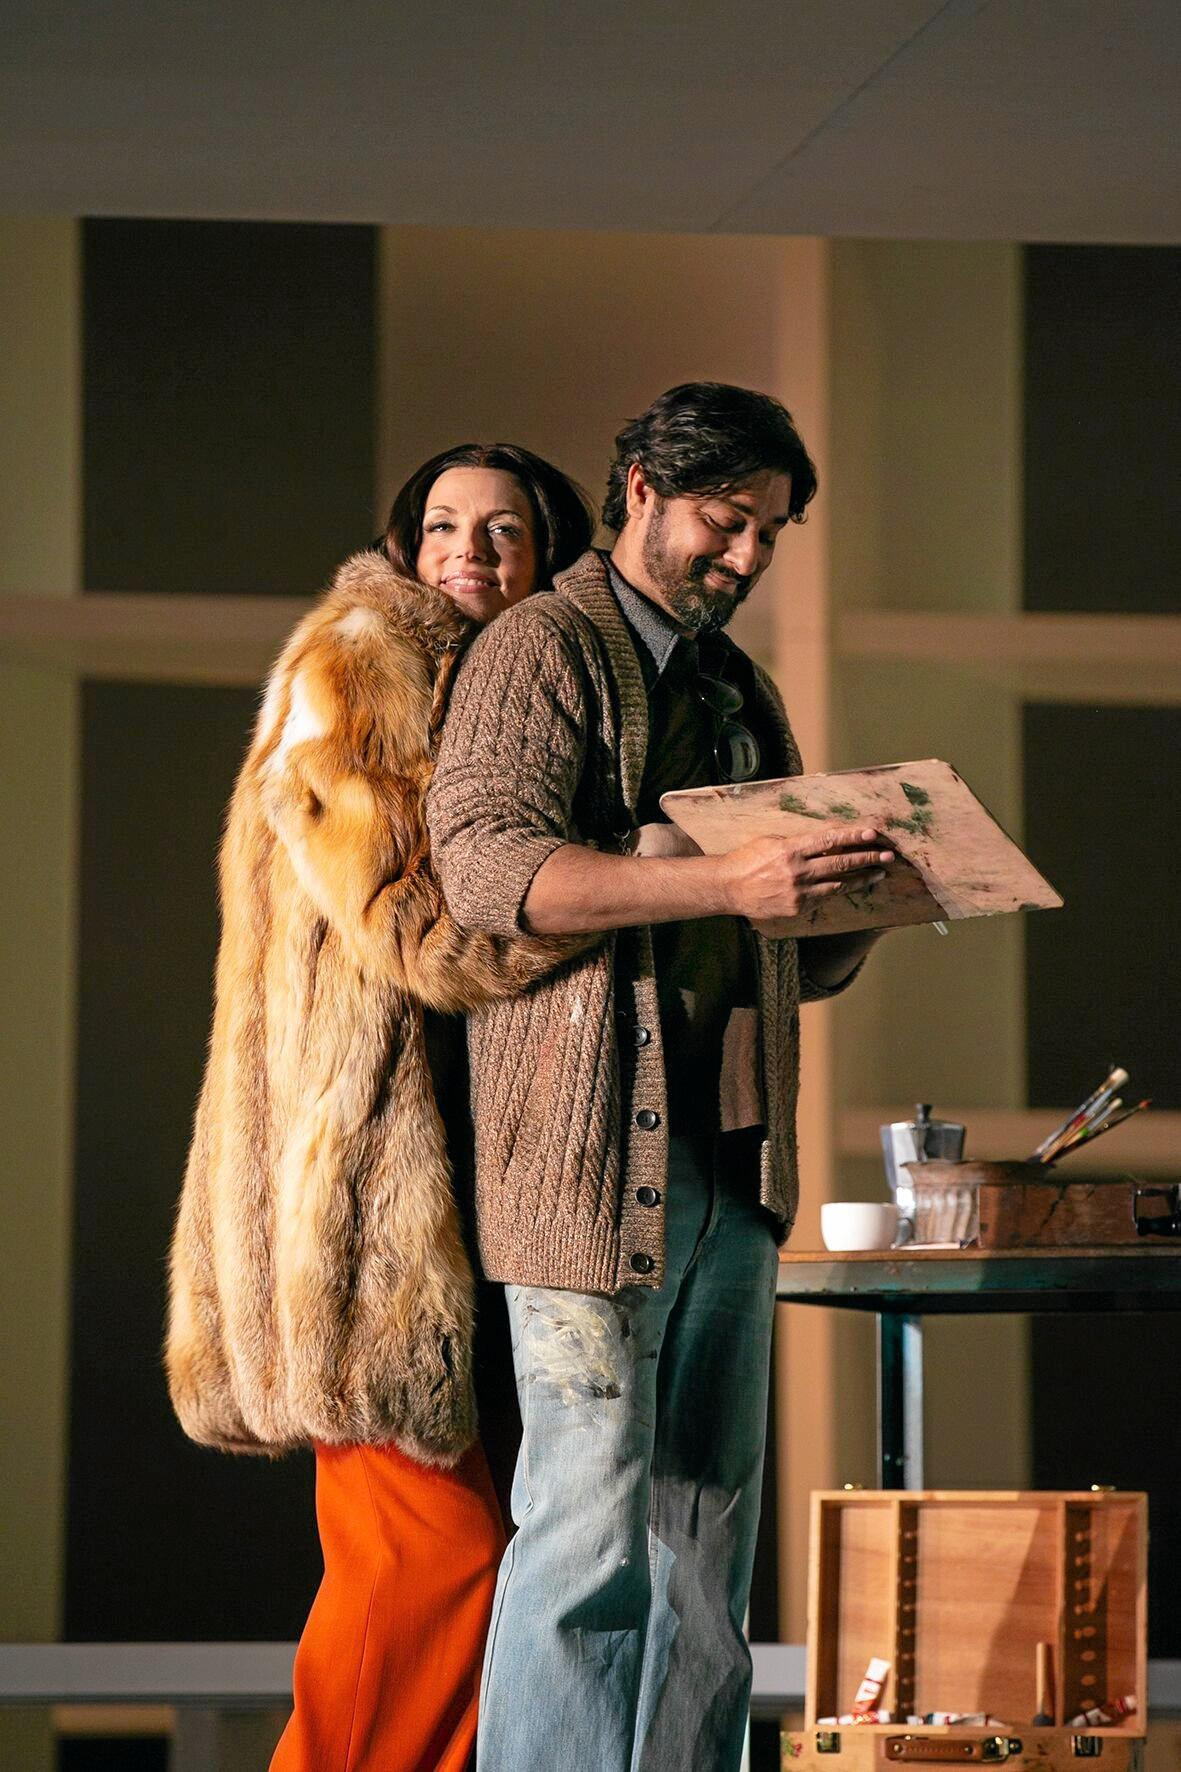 The doomed love story of Tosca (Rachelle Durkin) and Cavaradossi (Angus Wood) is a central theme through Tosca.